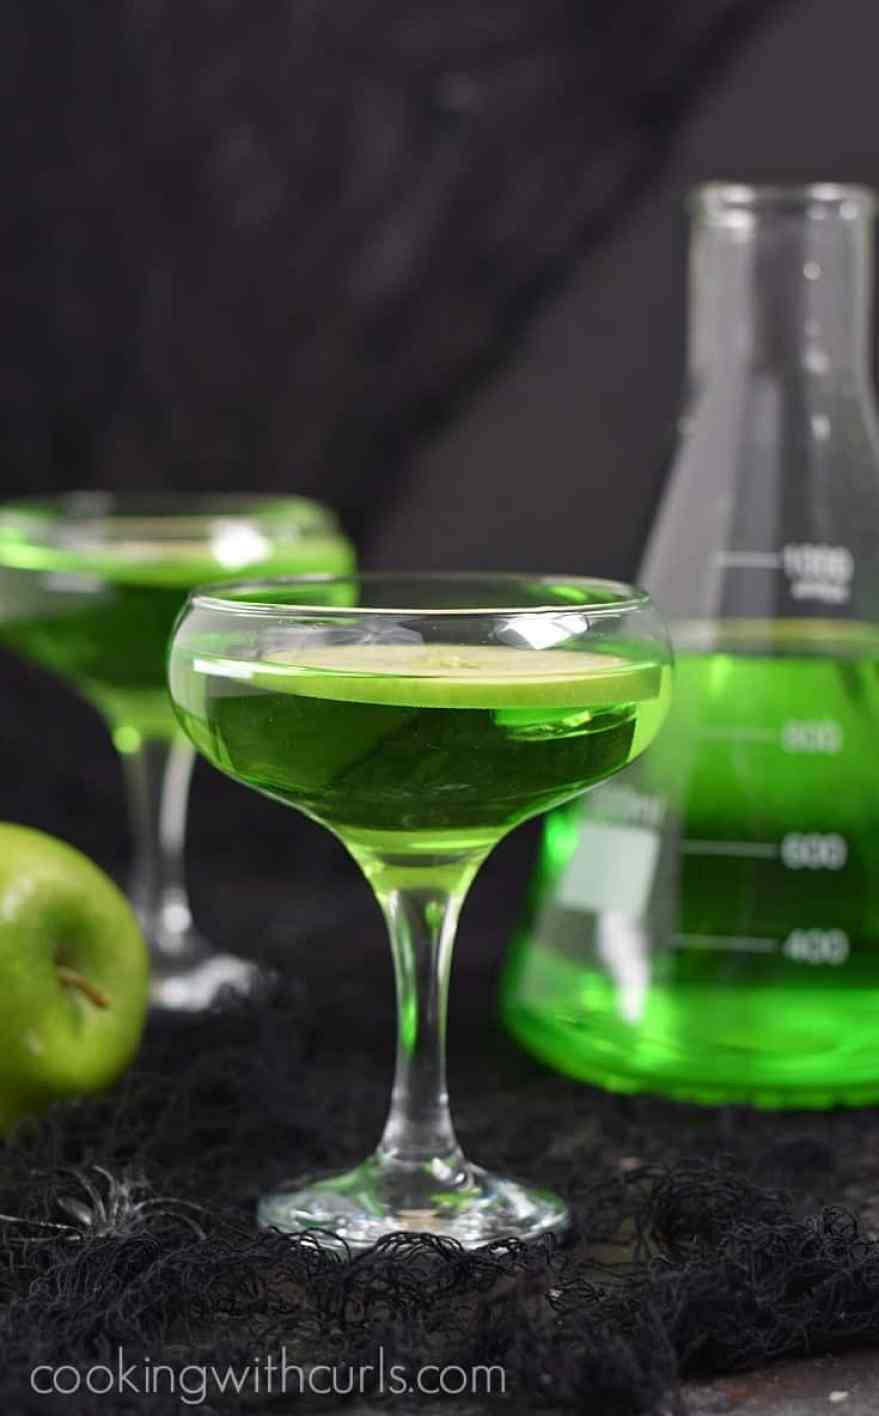 A poisoned apple cocktail in a shallow cocktail glass